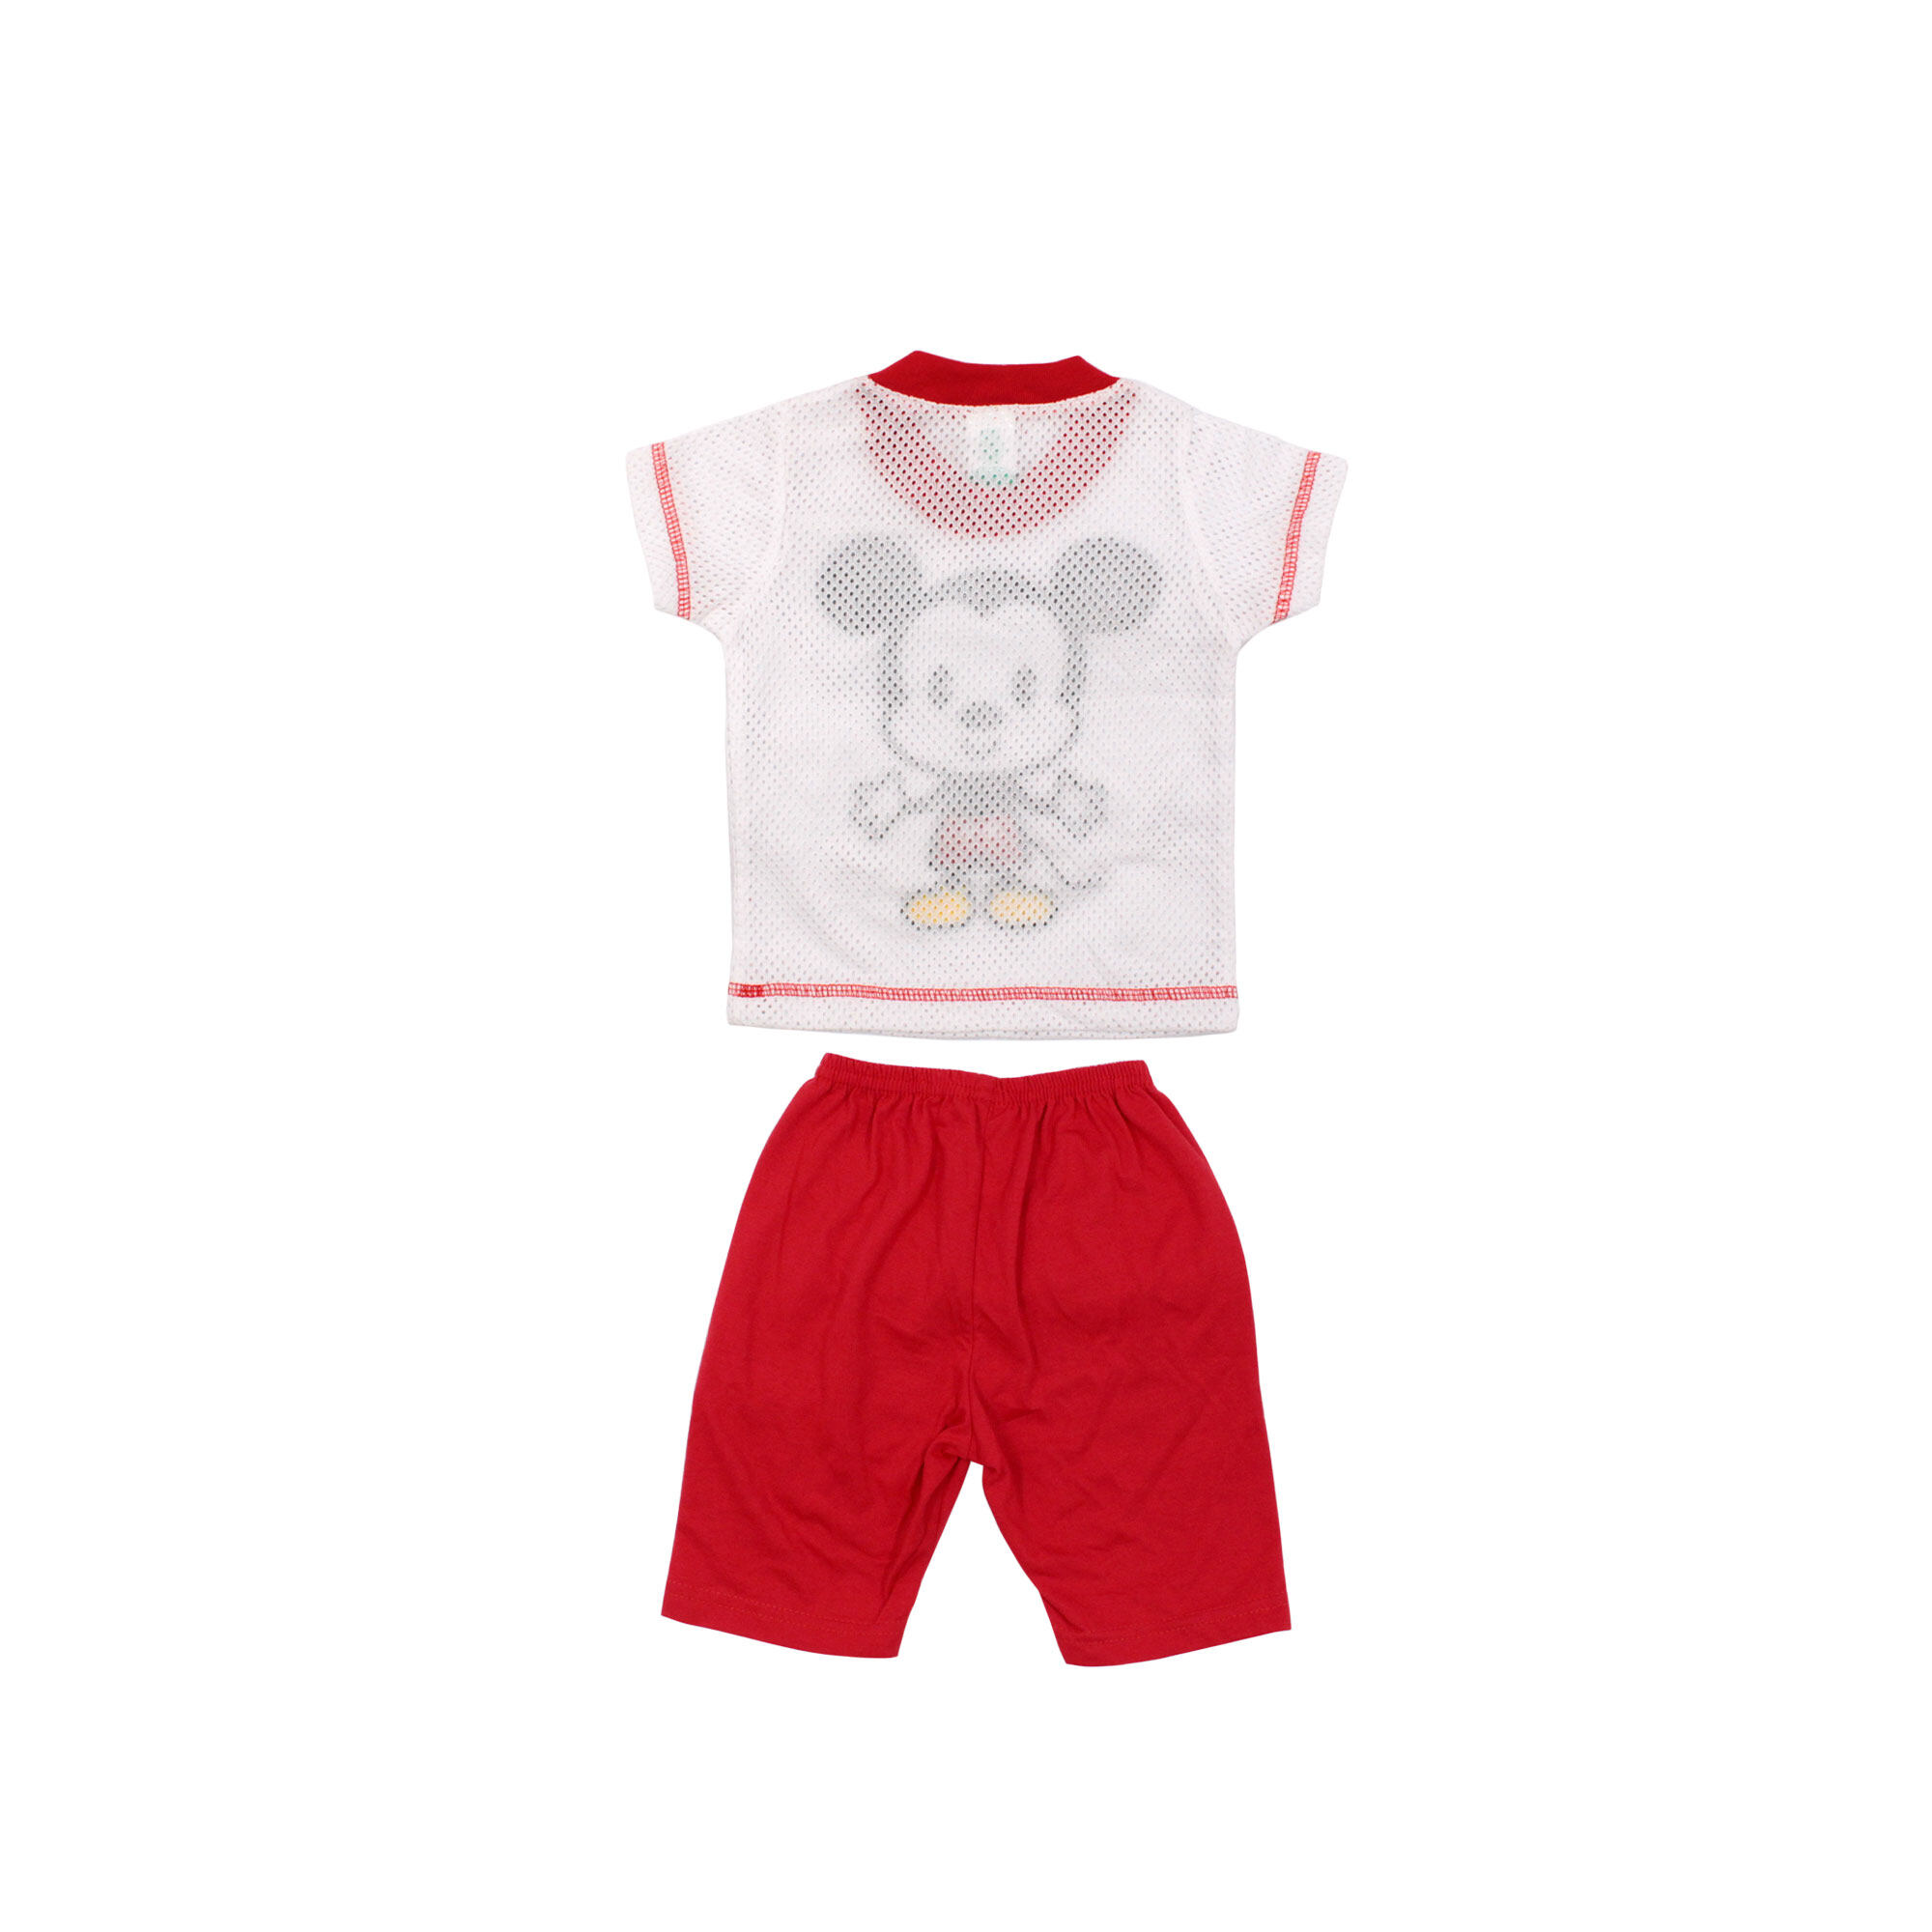 """""""[9.9] Disney Baby Mickey 4 Pcs Premium New Born Baby Clothes Gift Set 12 Months Old - Short Sleeves"""""""